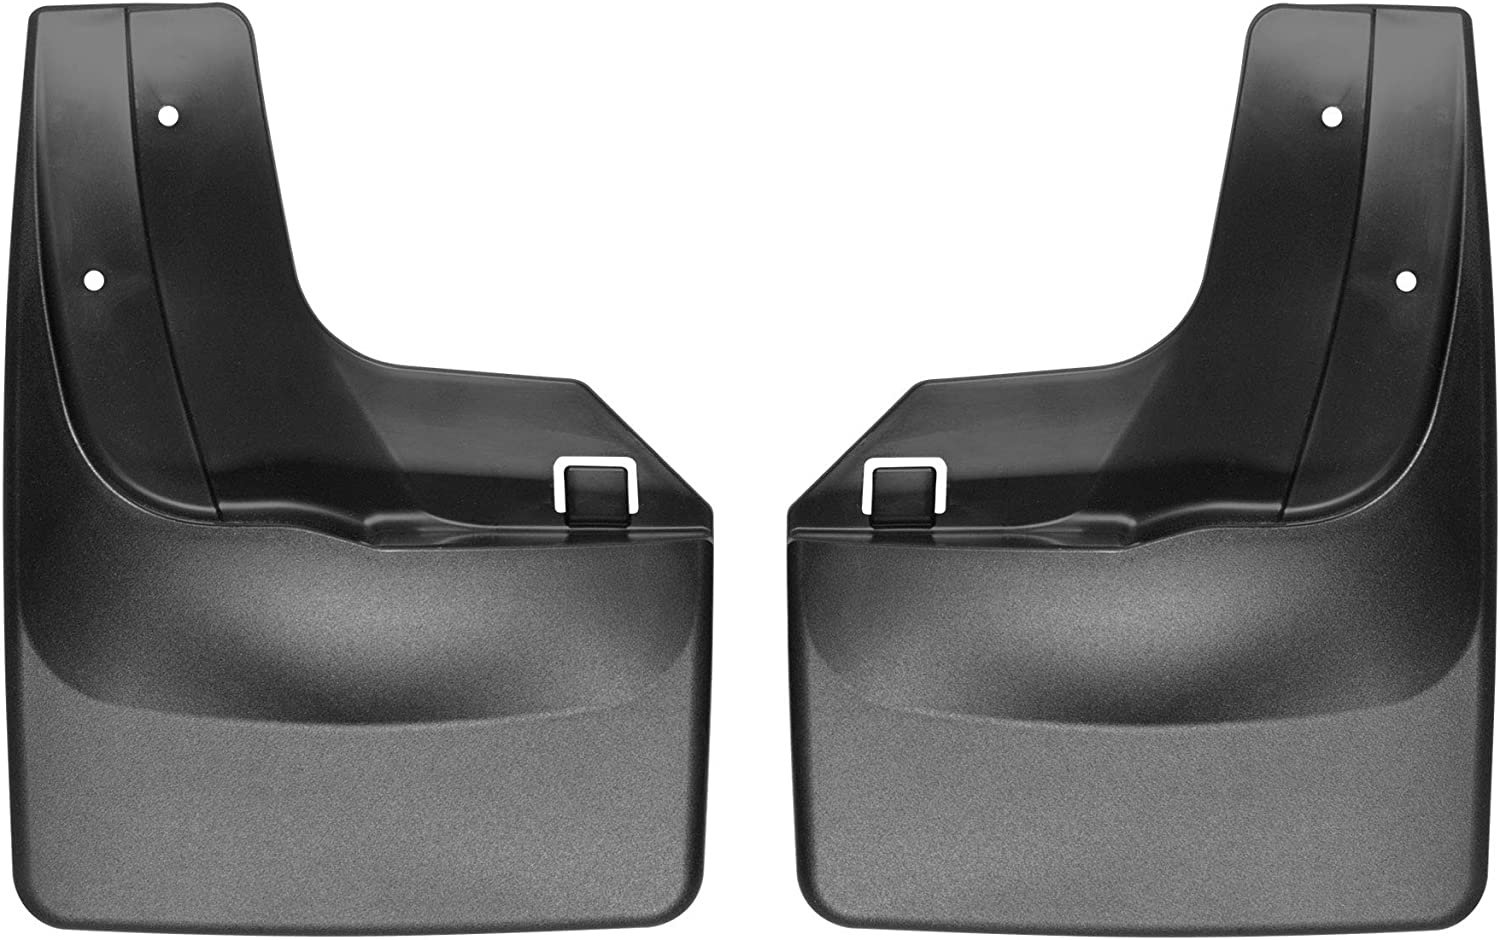 Husky Liners Rear Mud Guards Fits 07-17 Expedition XLT w//o power running boards